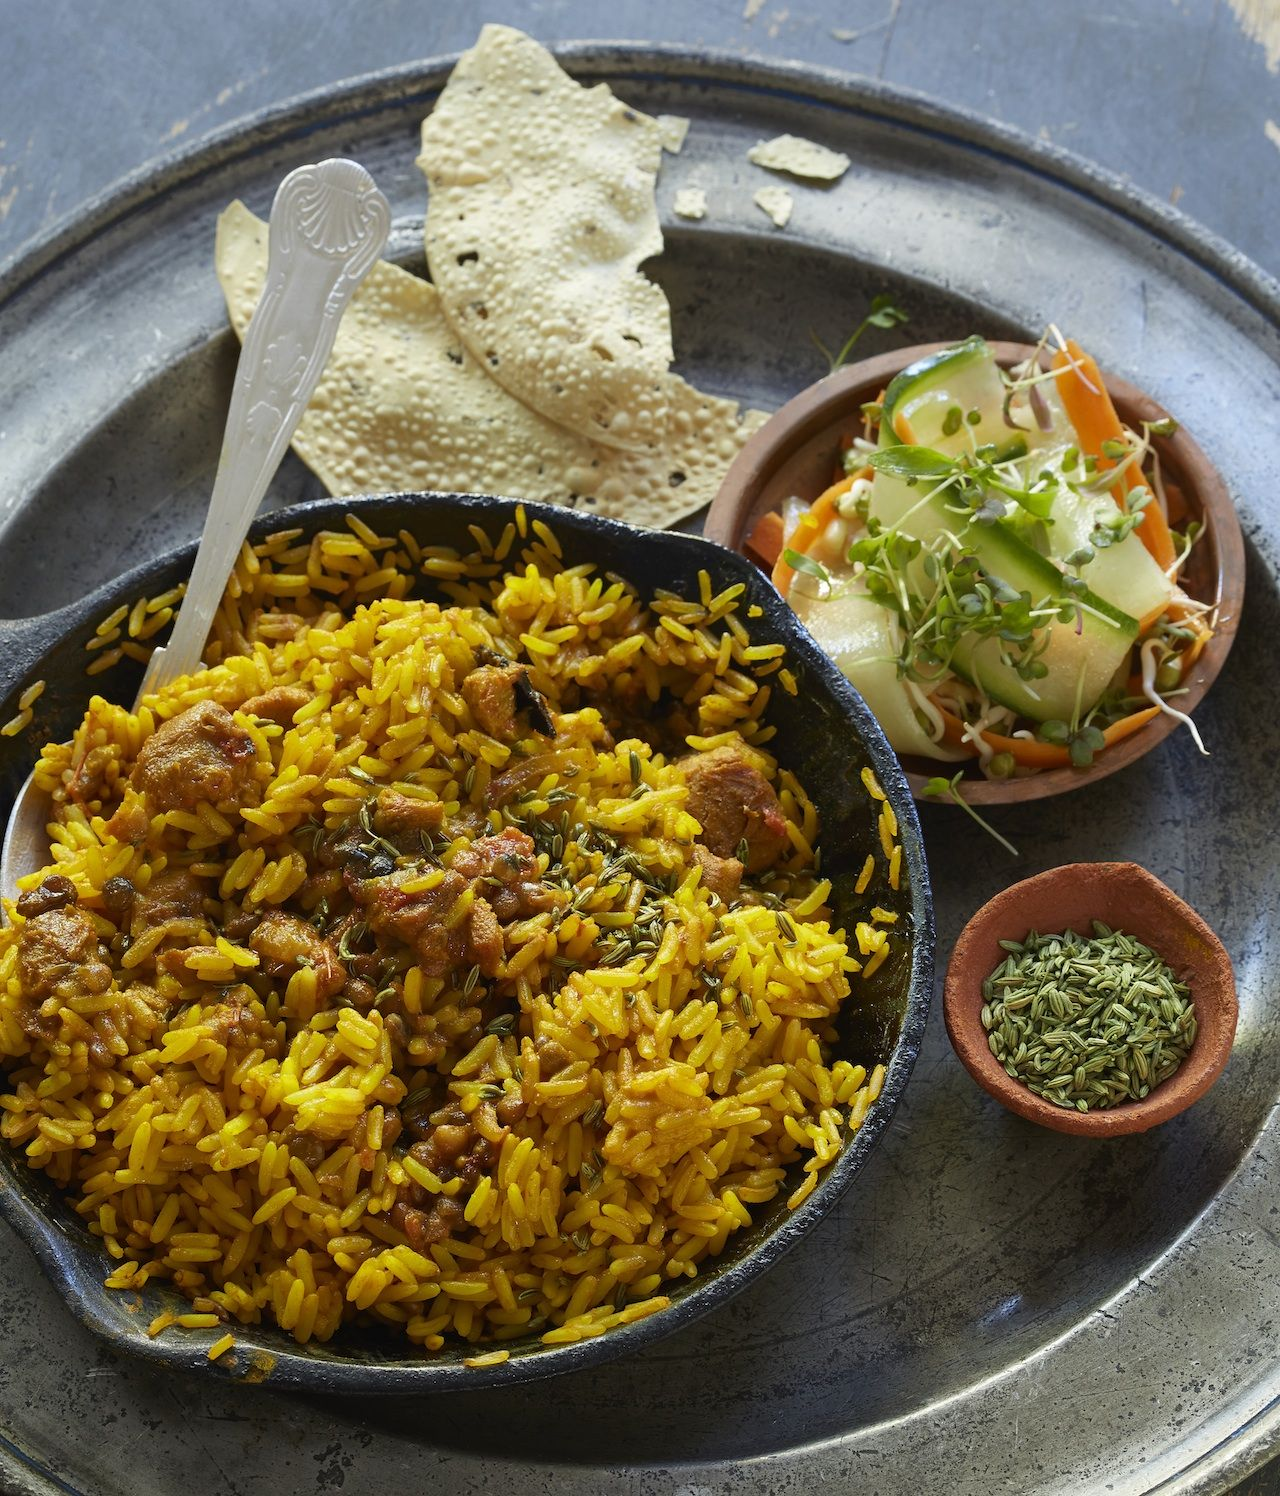 Chicken breyani the indian way durban south african recipes food forumfinder Image collections